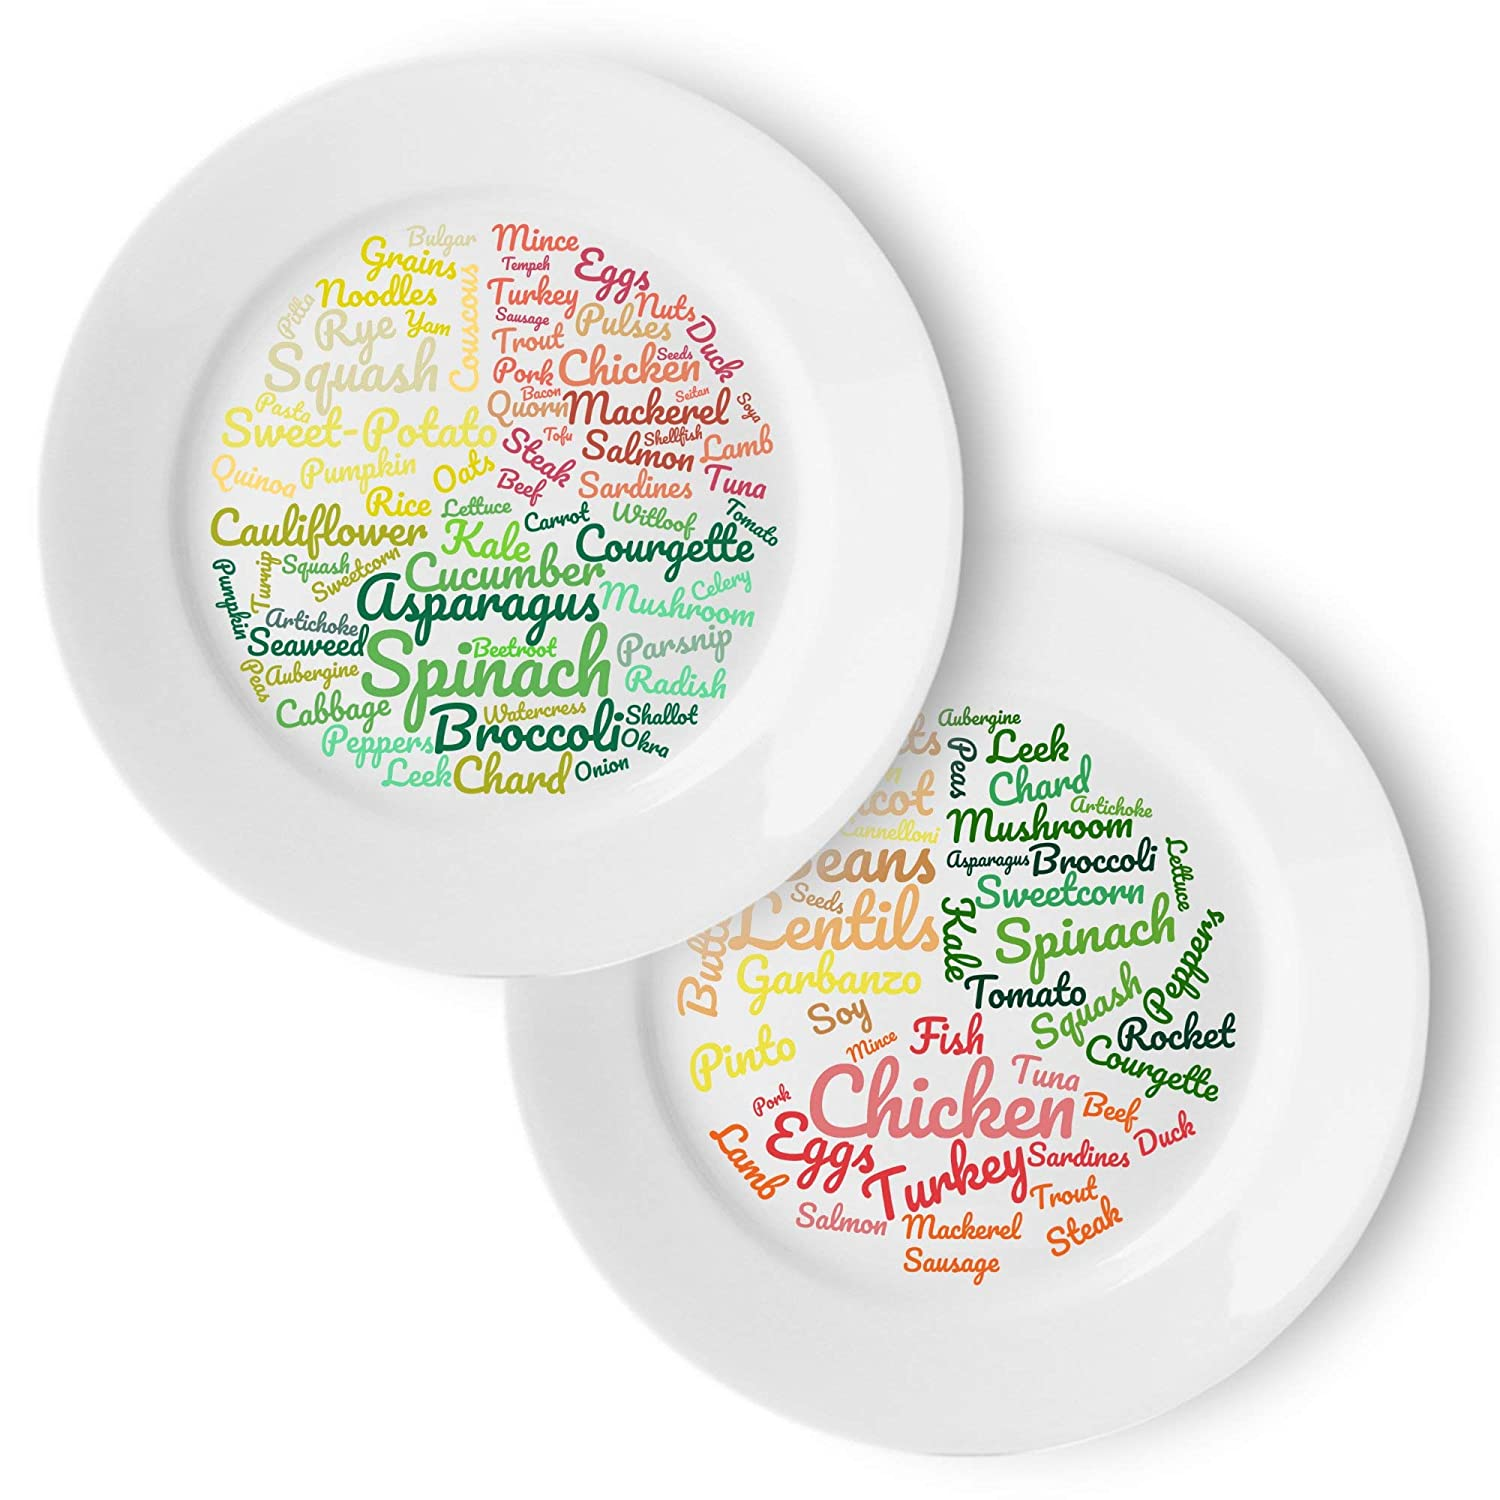 Healthy Eating Plate & Low Carb Plate (2 Pack) | Beautifully Designed Portion Control & Food Ideas for Sustainable Weight Loss | 10 inches - Easily Follow a Balanced Diet j&m